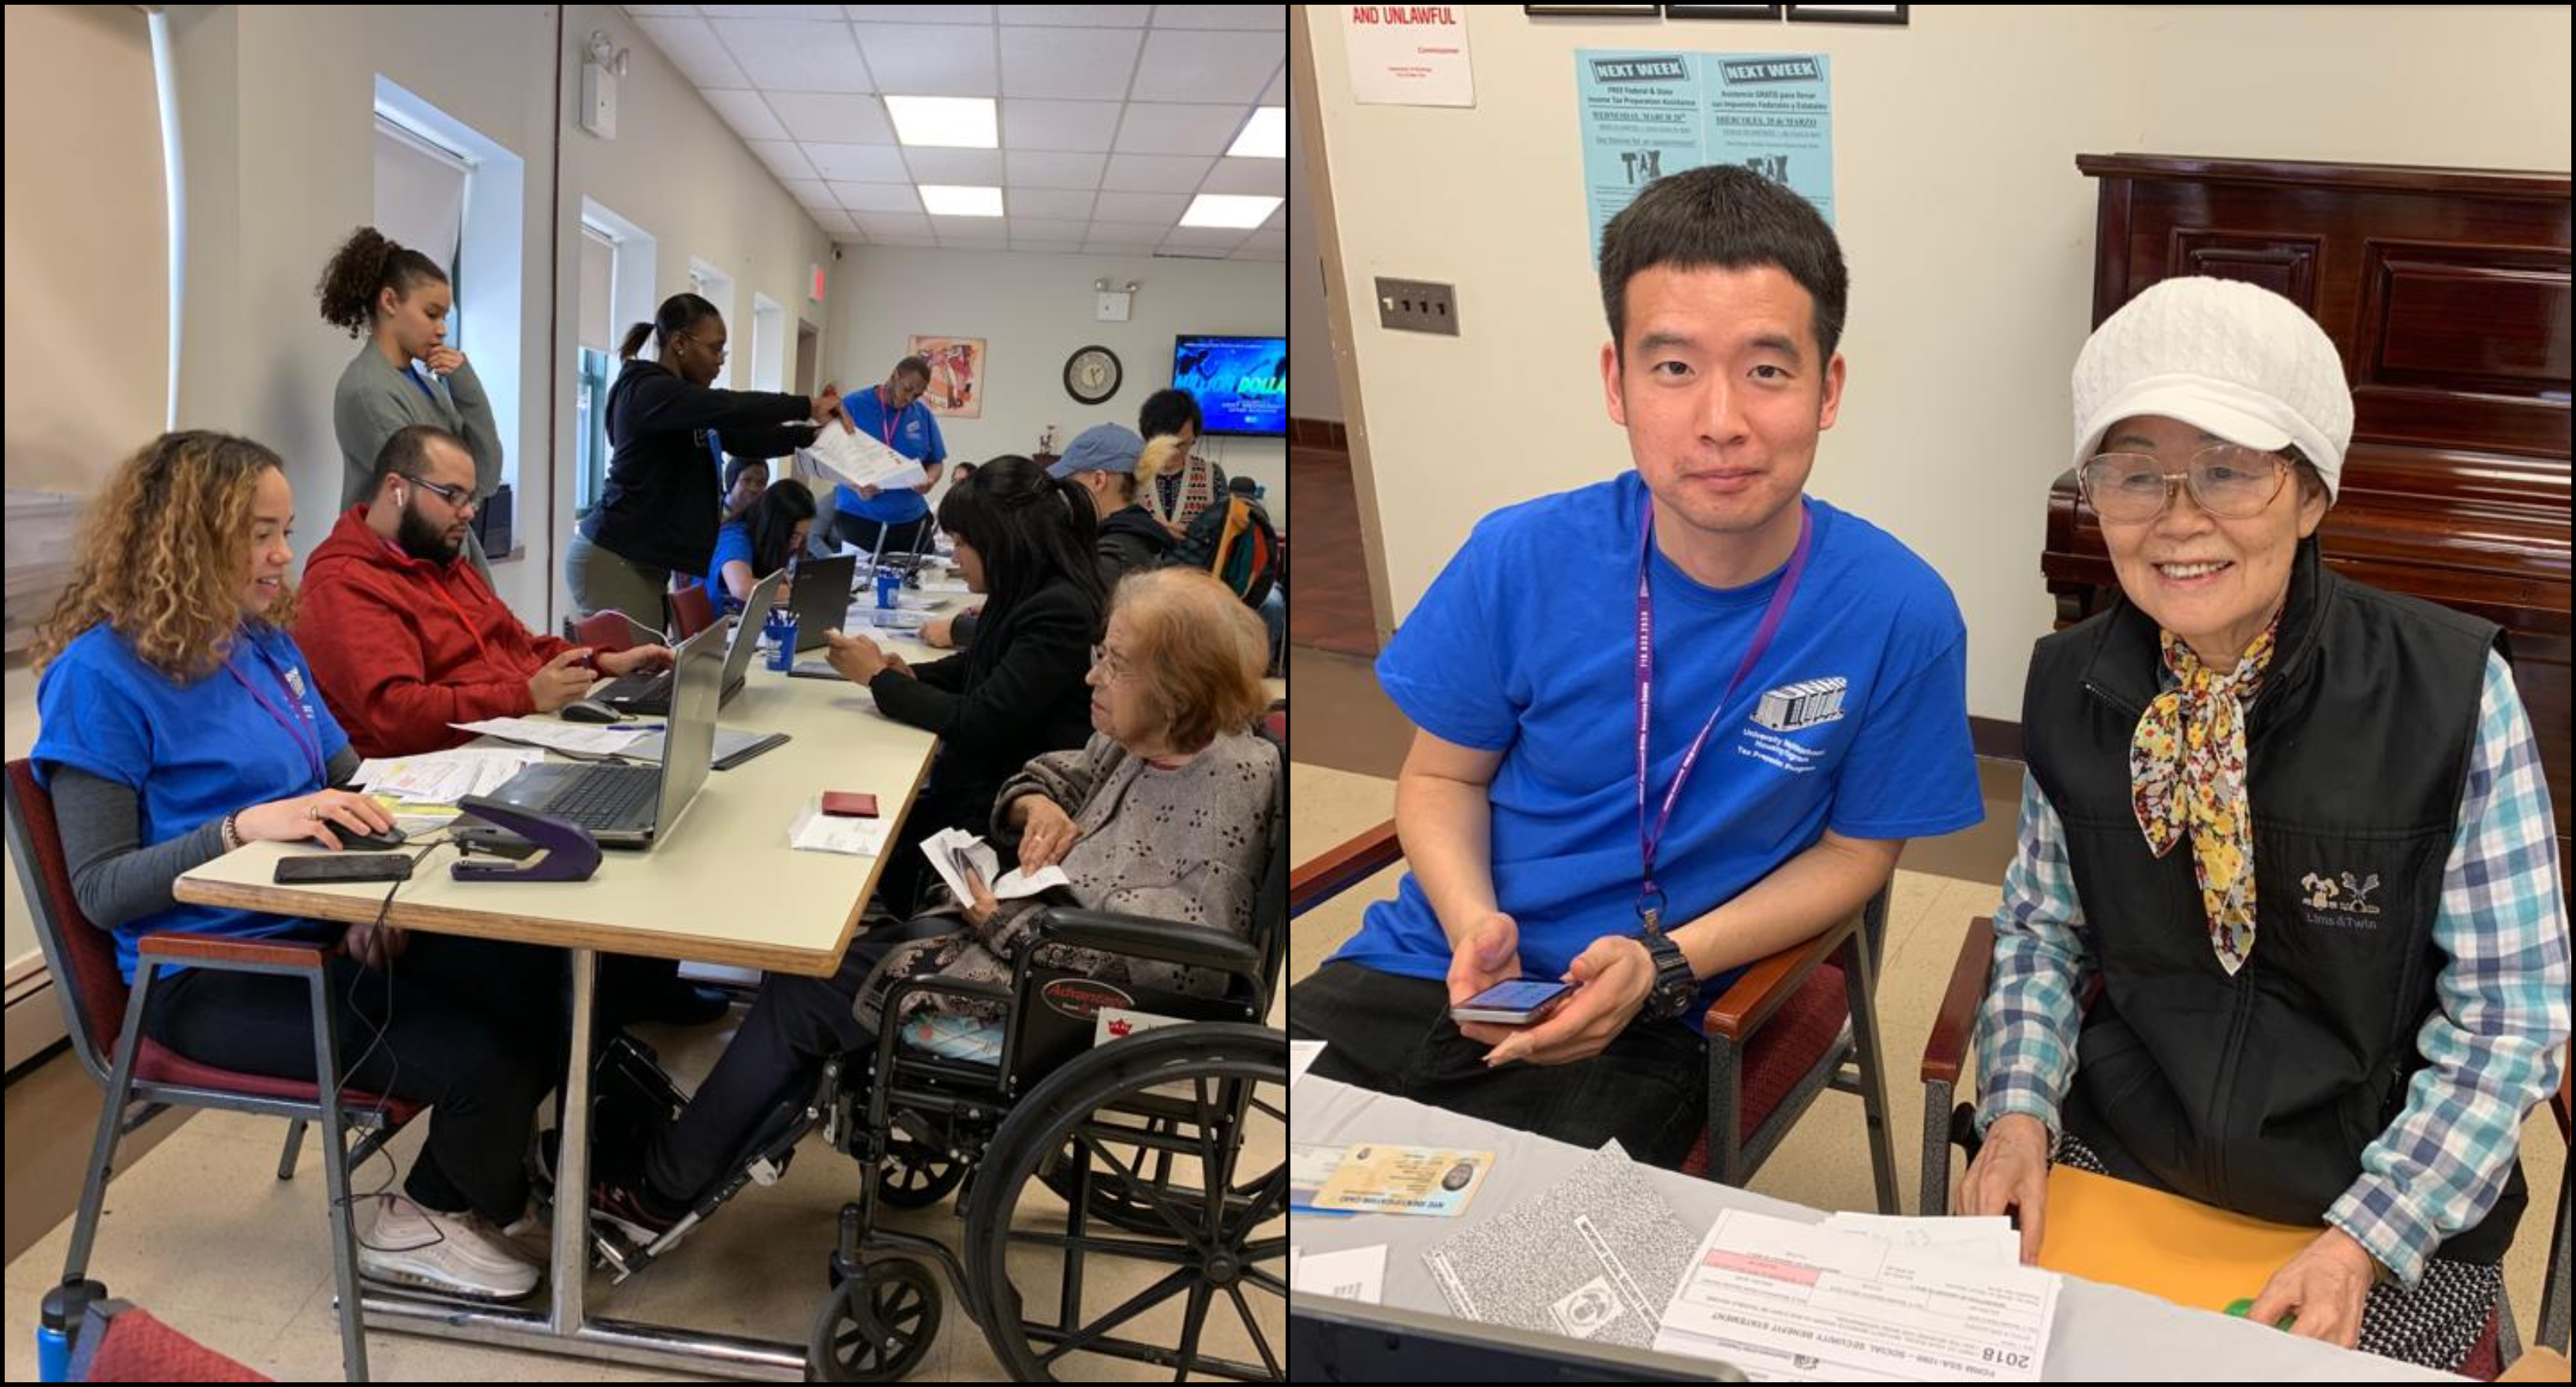 UNHP's Free Tax Program provided on-site tax prep services at three low-income senior citizens residences; UNHP's Rose Hill Apartments and Fordham Bedford Housing Corporation's Serviam Campus and Edison Arms. Former UNHP intern, Michael, (pictured right) volunteered with us to assist Korean- speaking seniors.고맙습니다